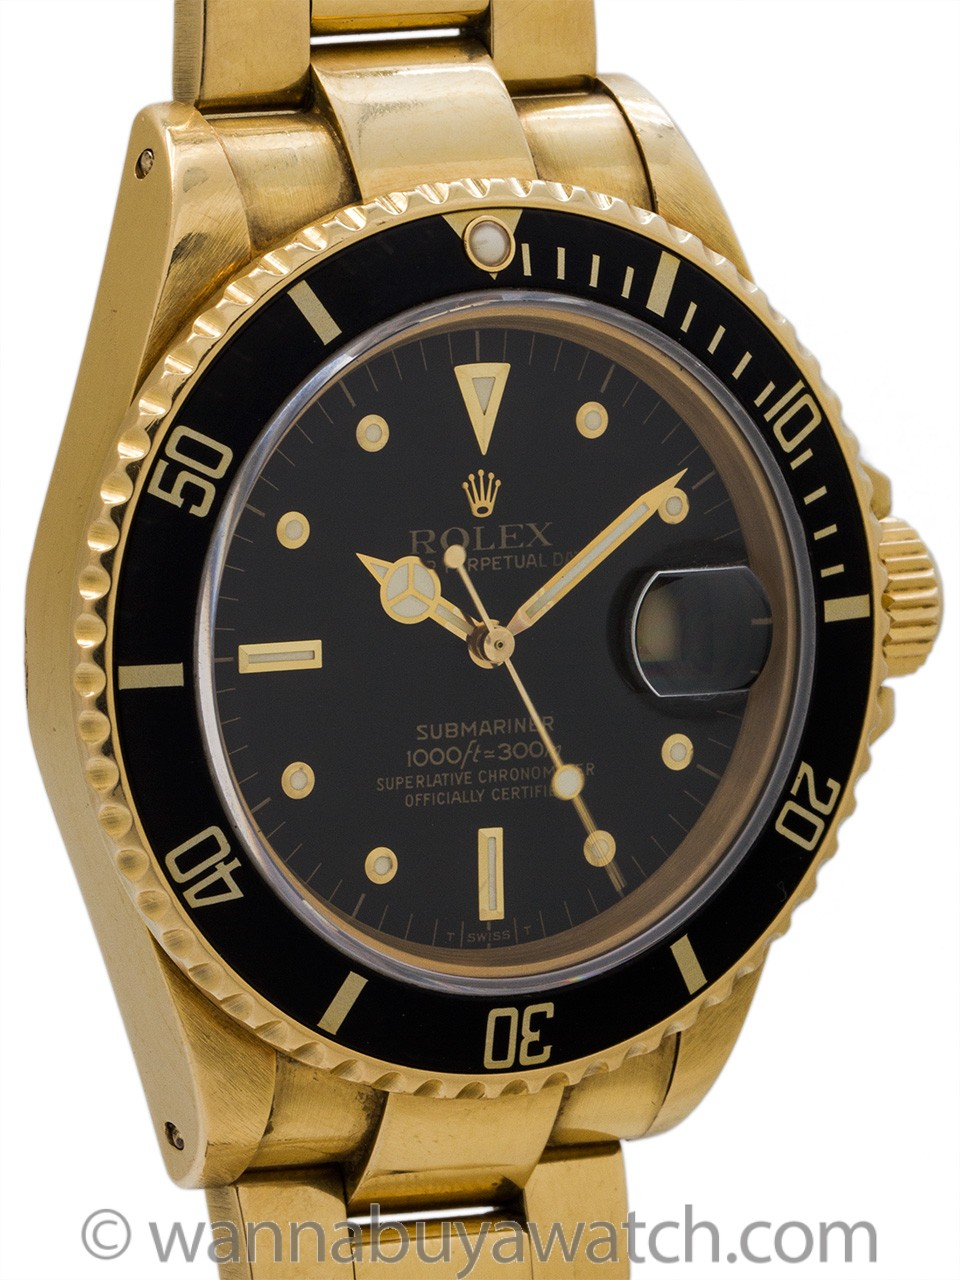 Rolex Submariner ref 16808 18K YG Transitional model circa 1985